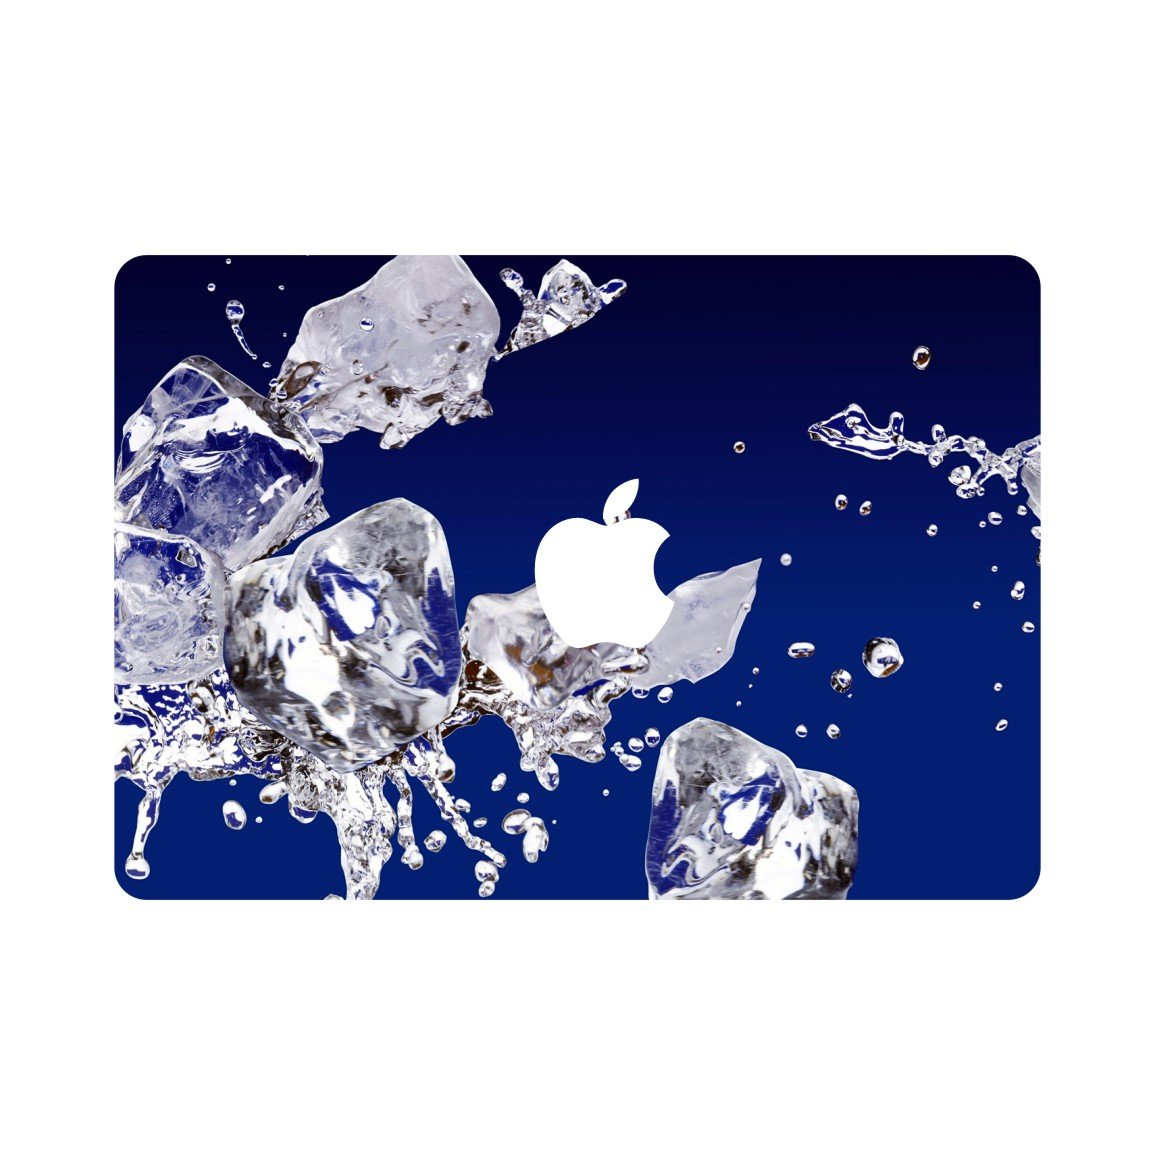 Fit for New MacBook Pro 15 inch A1707//A1990 with Retina Display 2016 Release fits Touch Bar /& Touch ID Ver Creative Ice Block Special Design Removable Vinyl Front Top Decal A3